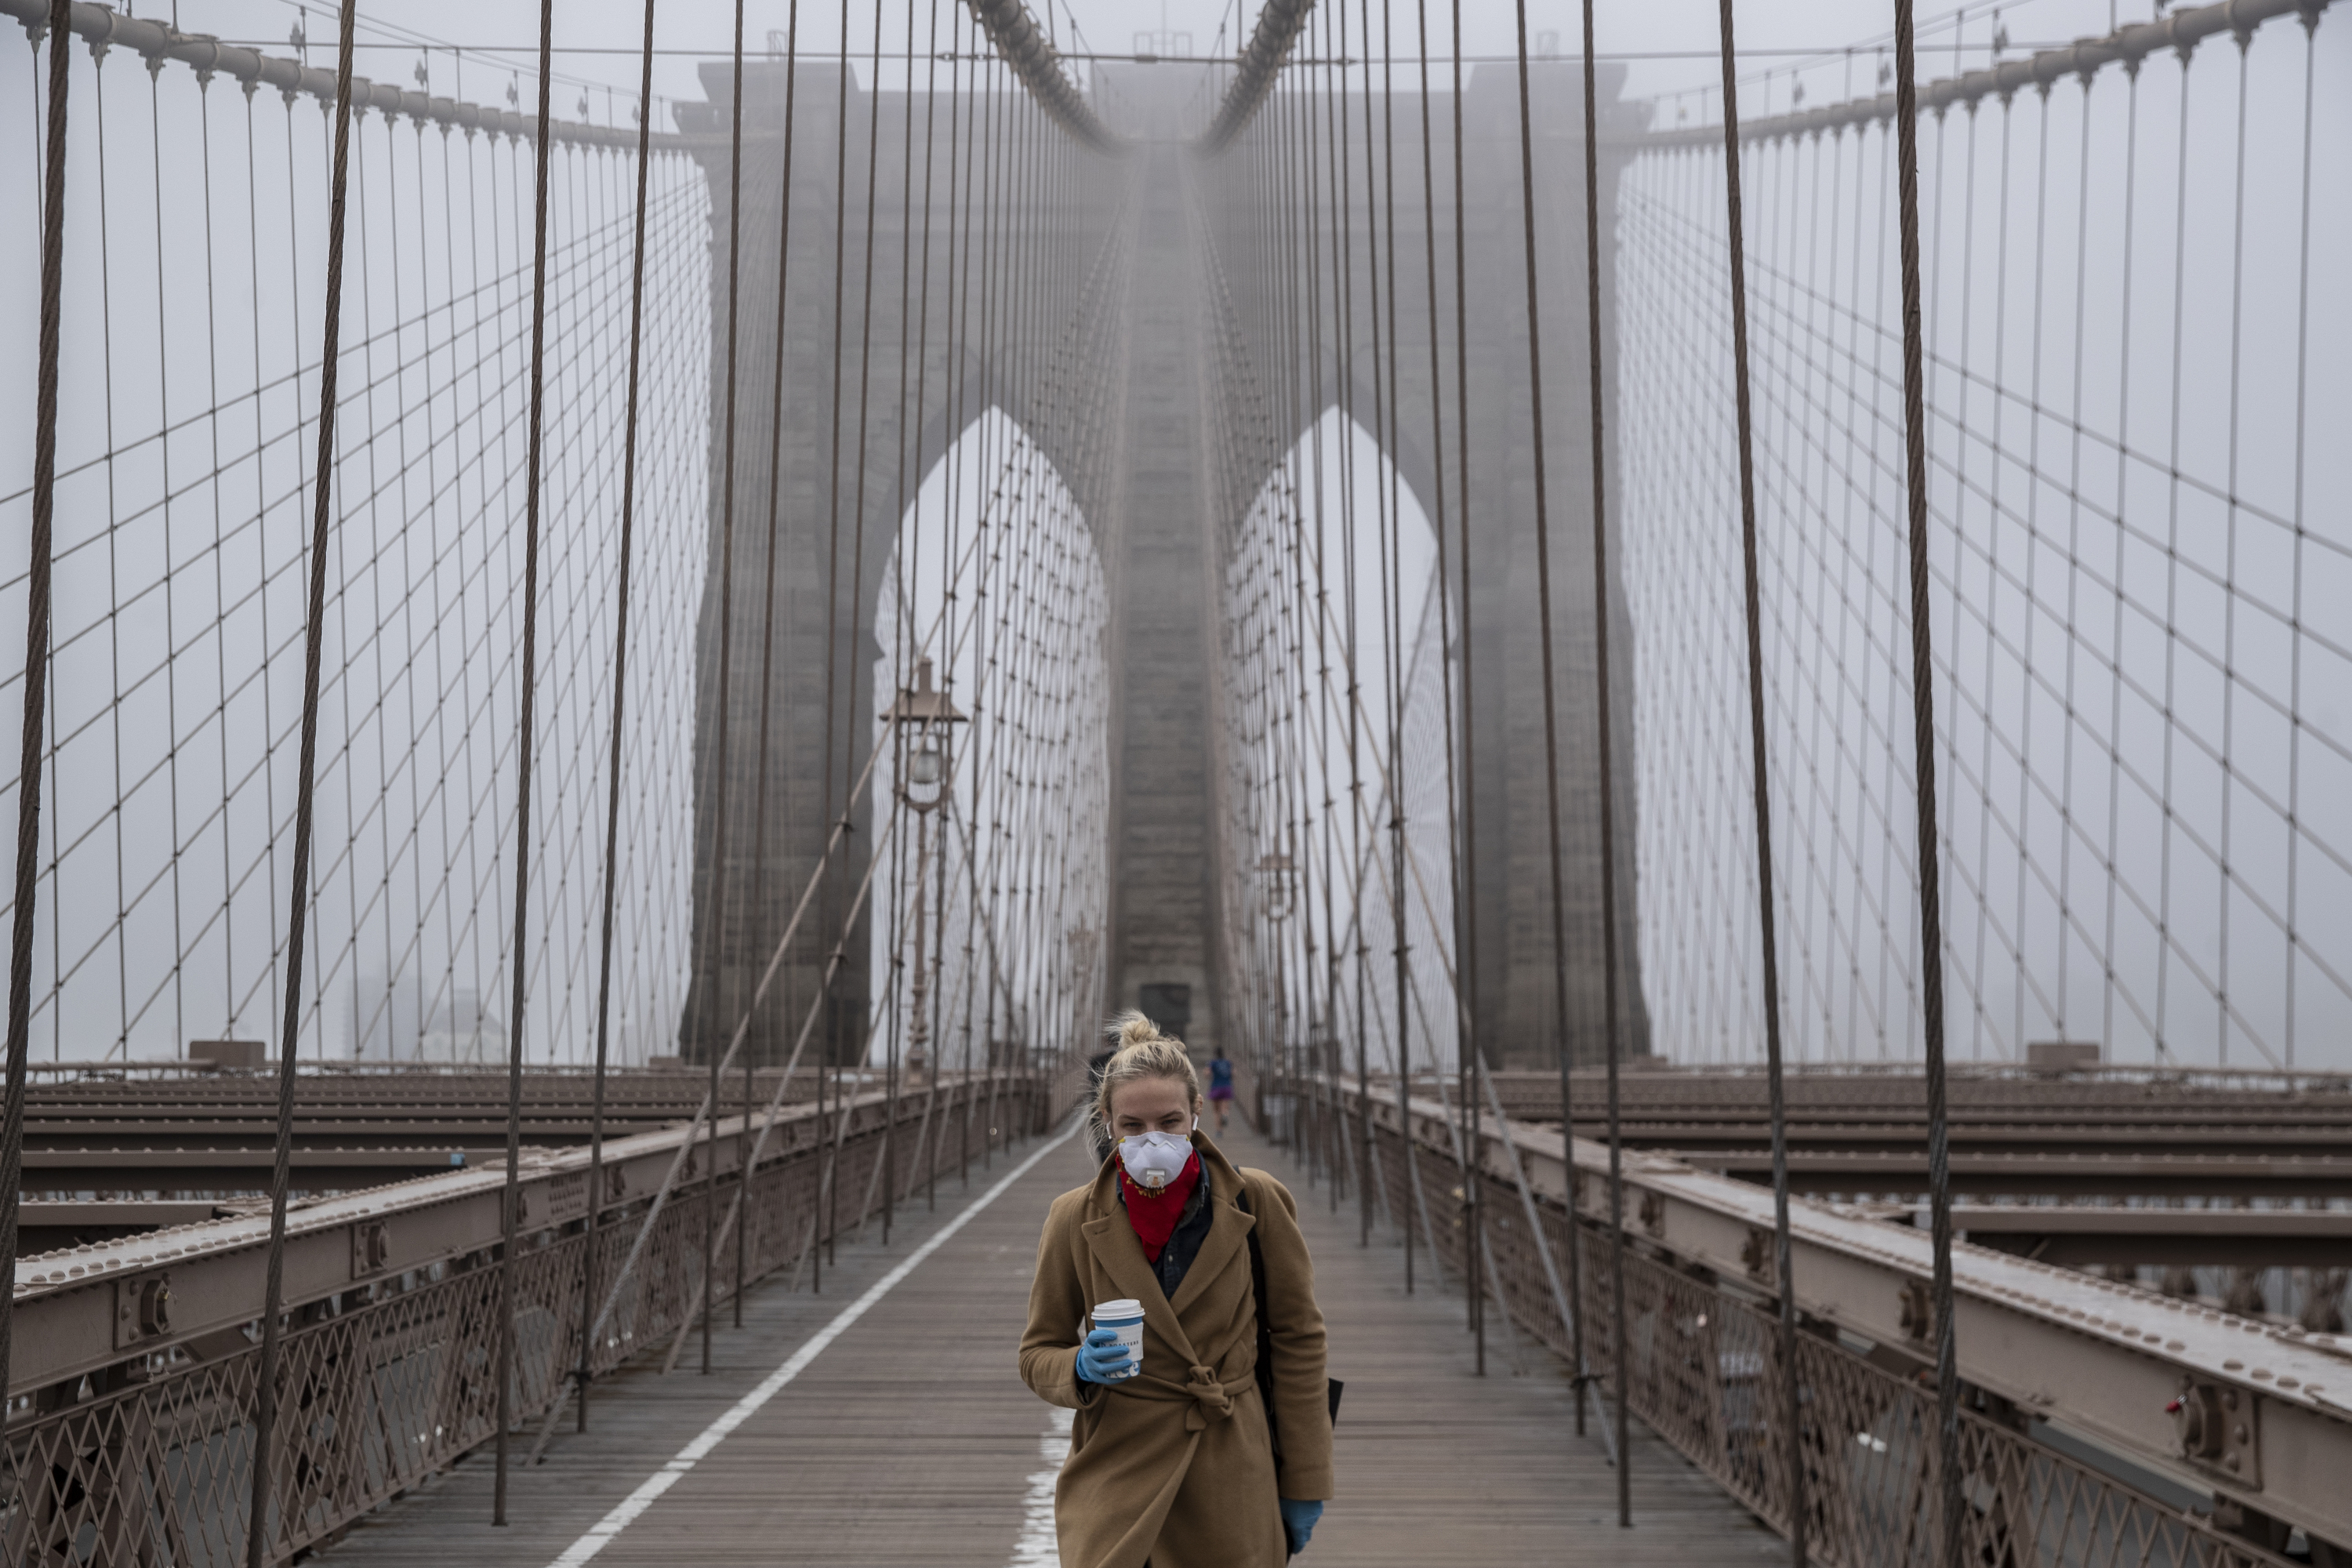 NEW YORK, NY - MARCH 20: A woman wearing a mask walks the Brooklyn Bridge in the midst of the coronavirus (COVID-19) outbreak on March 20, 2020 in New York City. The economic situation in the city continued to decline as New York Gov Andrew Cuomo ordered all nonessential businesses to keep all their workers at home and New York weighed a shelter in place order for the entire city. (Photo by Victor J. Blue/Getty Images)